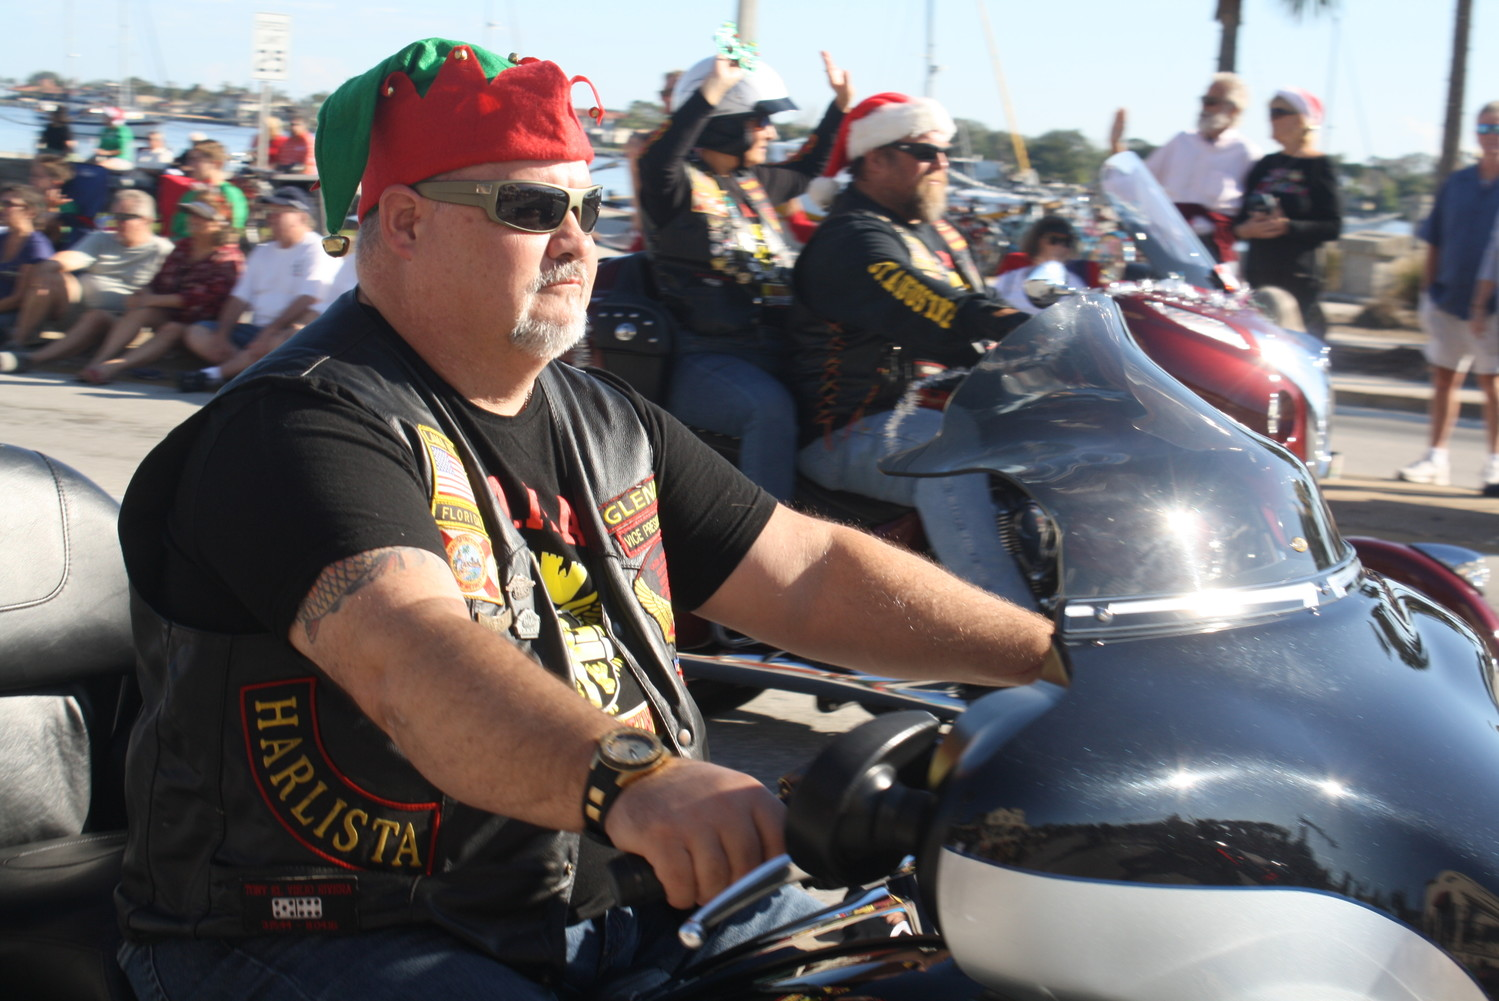 A motorcyclist takes part in the holiday cheer of the St. Augustine Christmas parade.